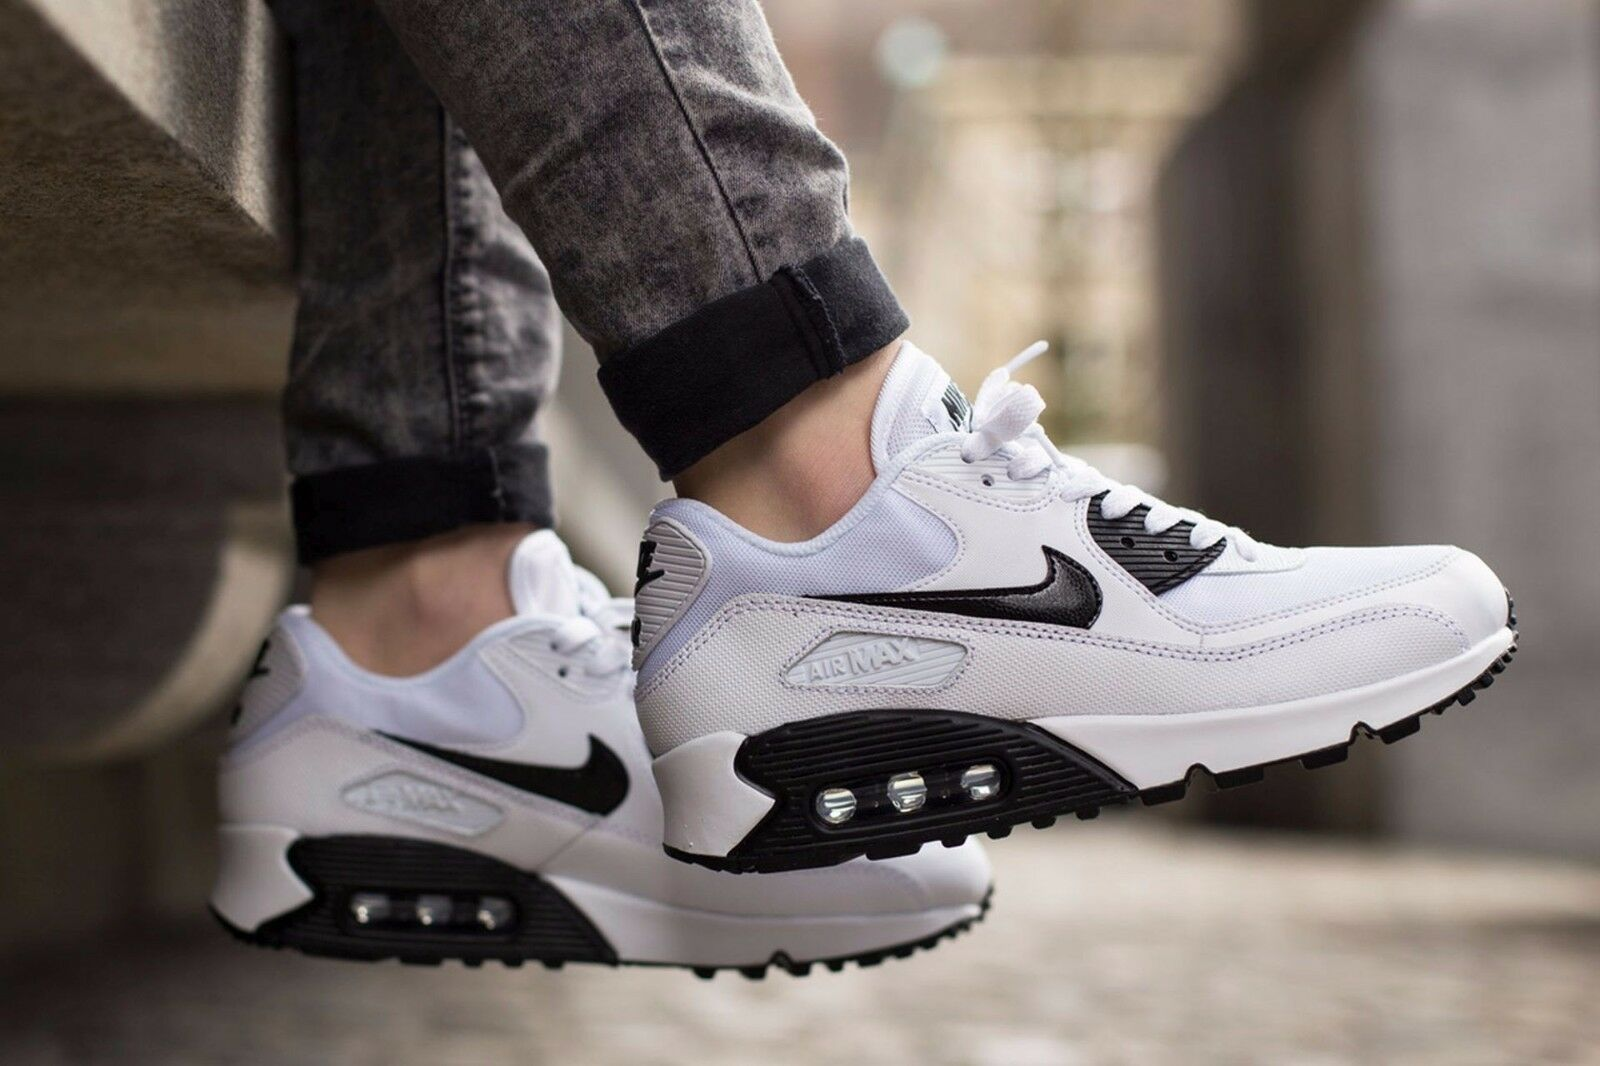 57bd884a4da1 Nike Air Max 90 Essential Size 9 Black White 616730-110 Womens ...